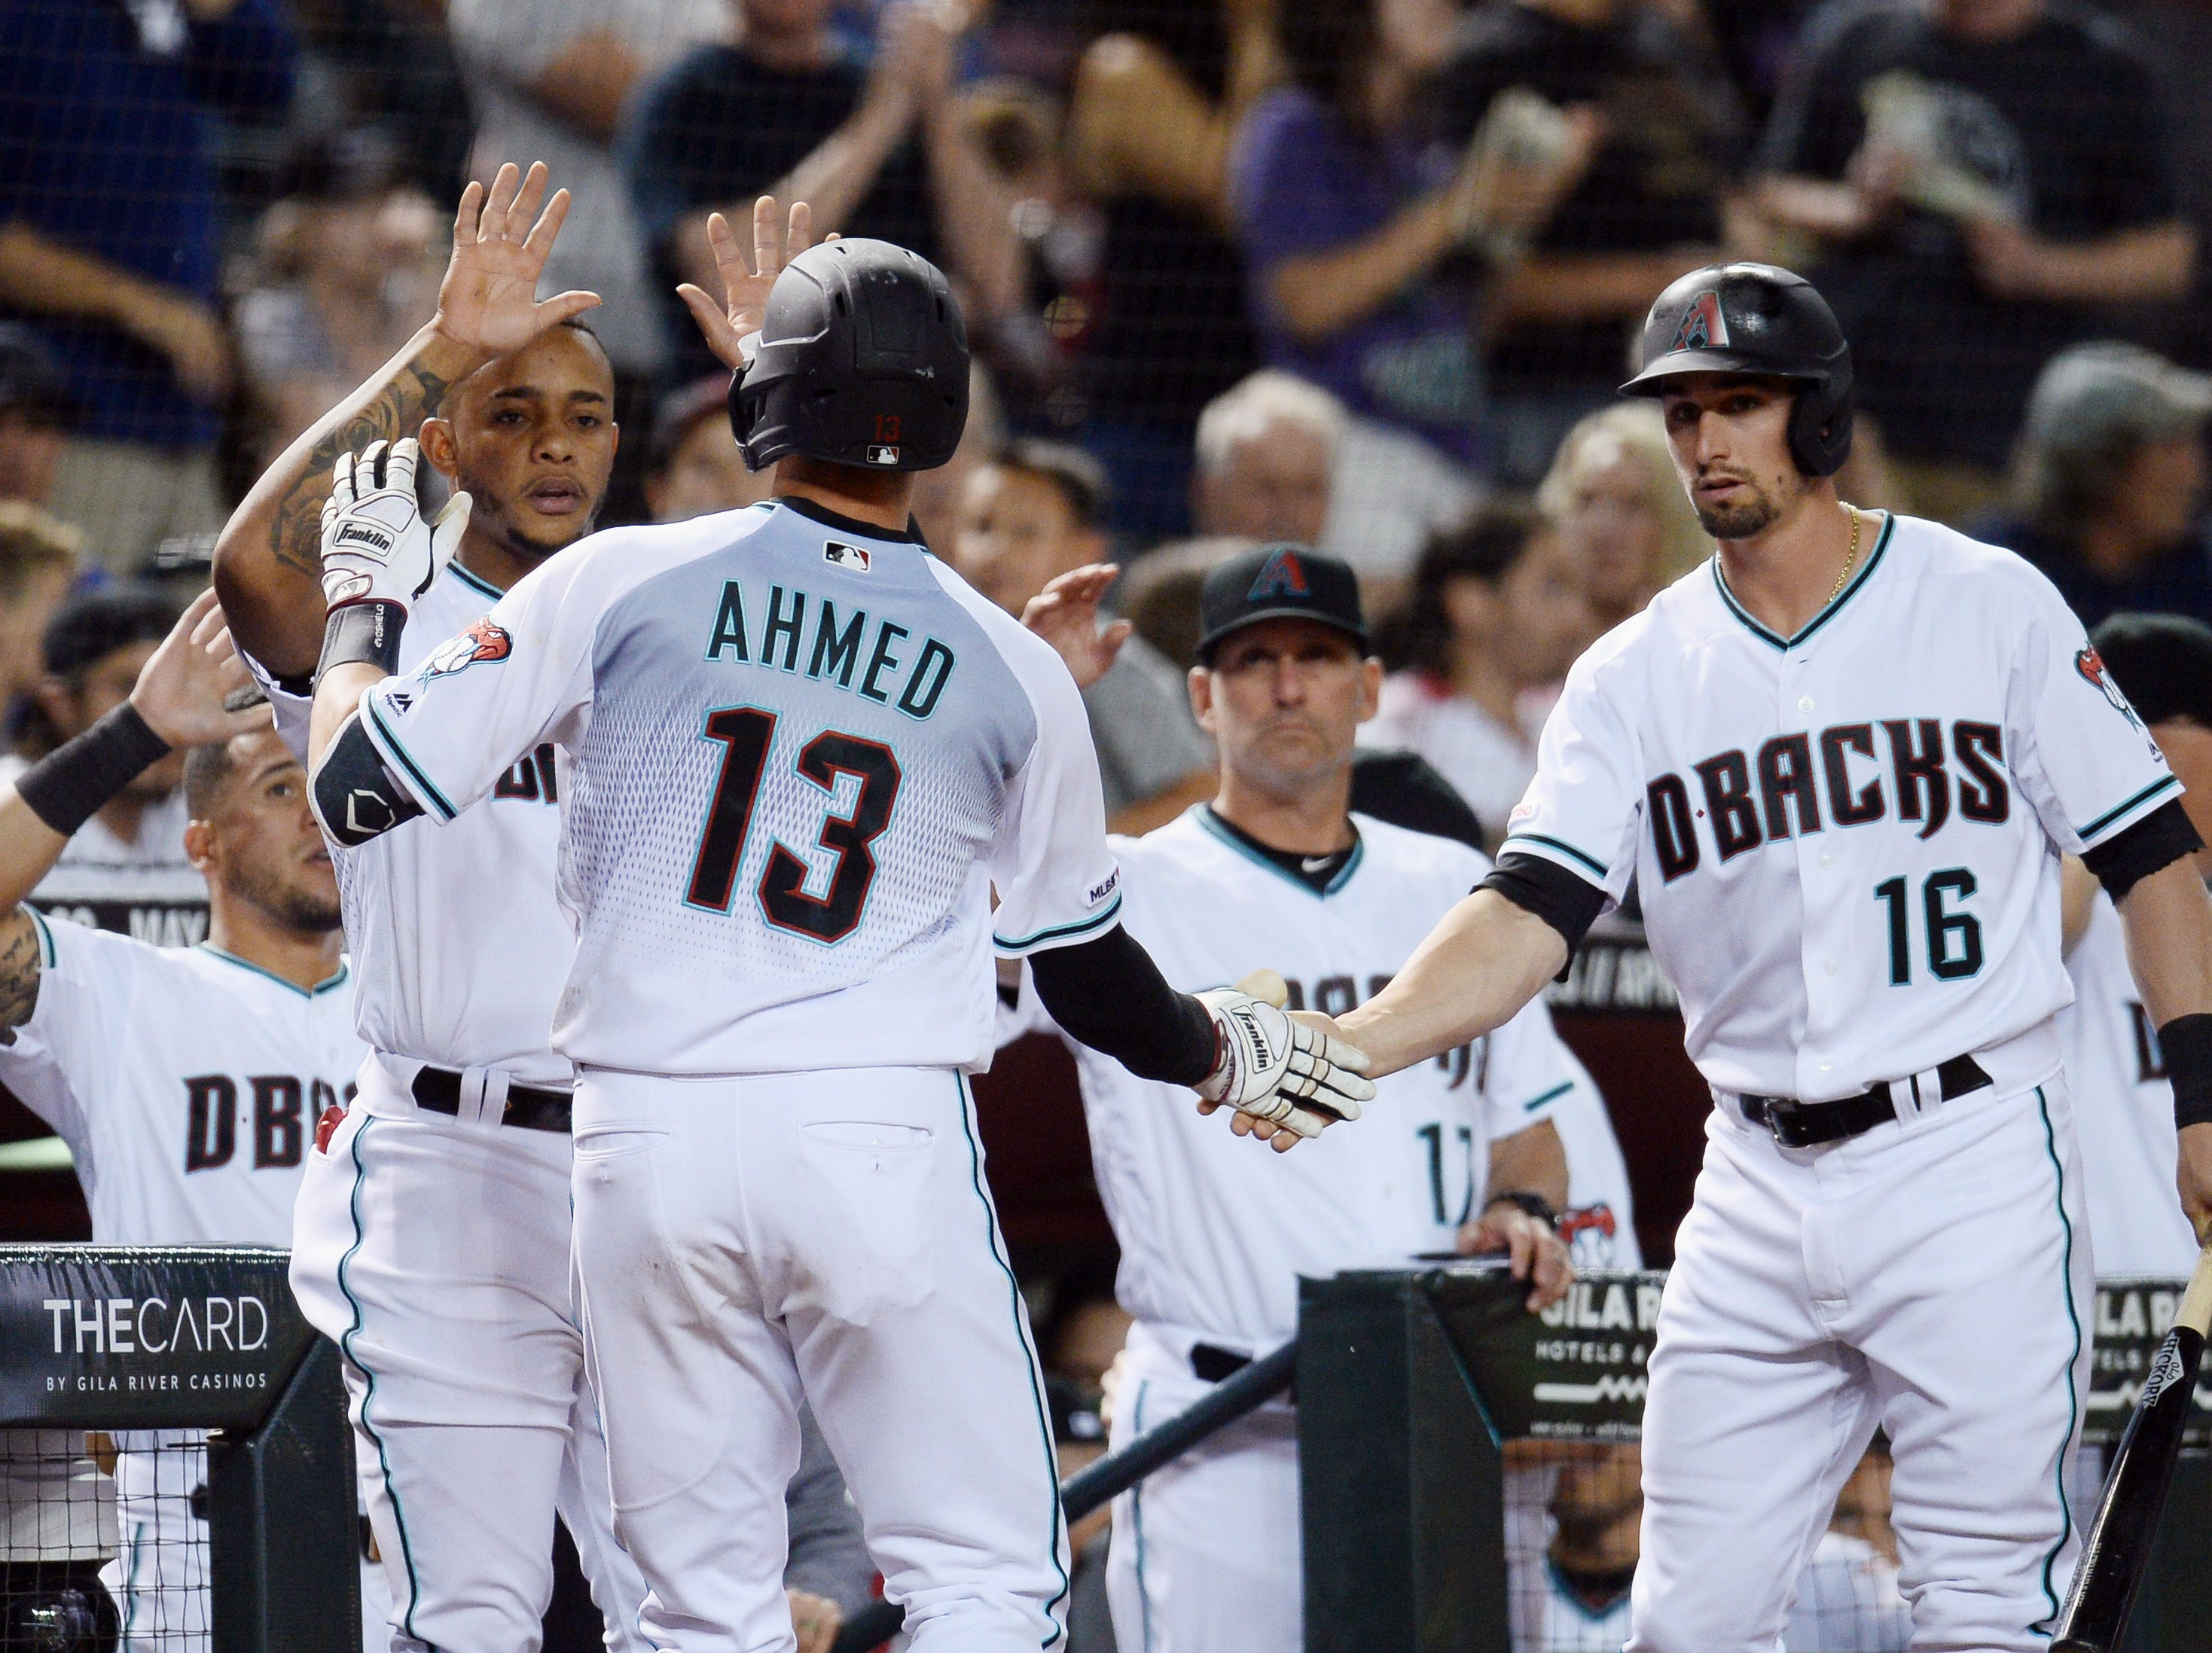 Apr 9, 2019; Phoenix, AZ, USA; Arizona Diamondbacks shortstop Nick Ahmed (13) slaps hands with shortstop Ketel Marte (4) and center fielder Tim Locastro (16) after hitting a solo home run against the Texas Rangers during the seventh inning at Chase Field. Mandatory Credit: Joe Camporeale-USA TODAY Sports